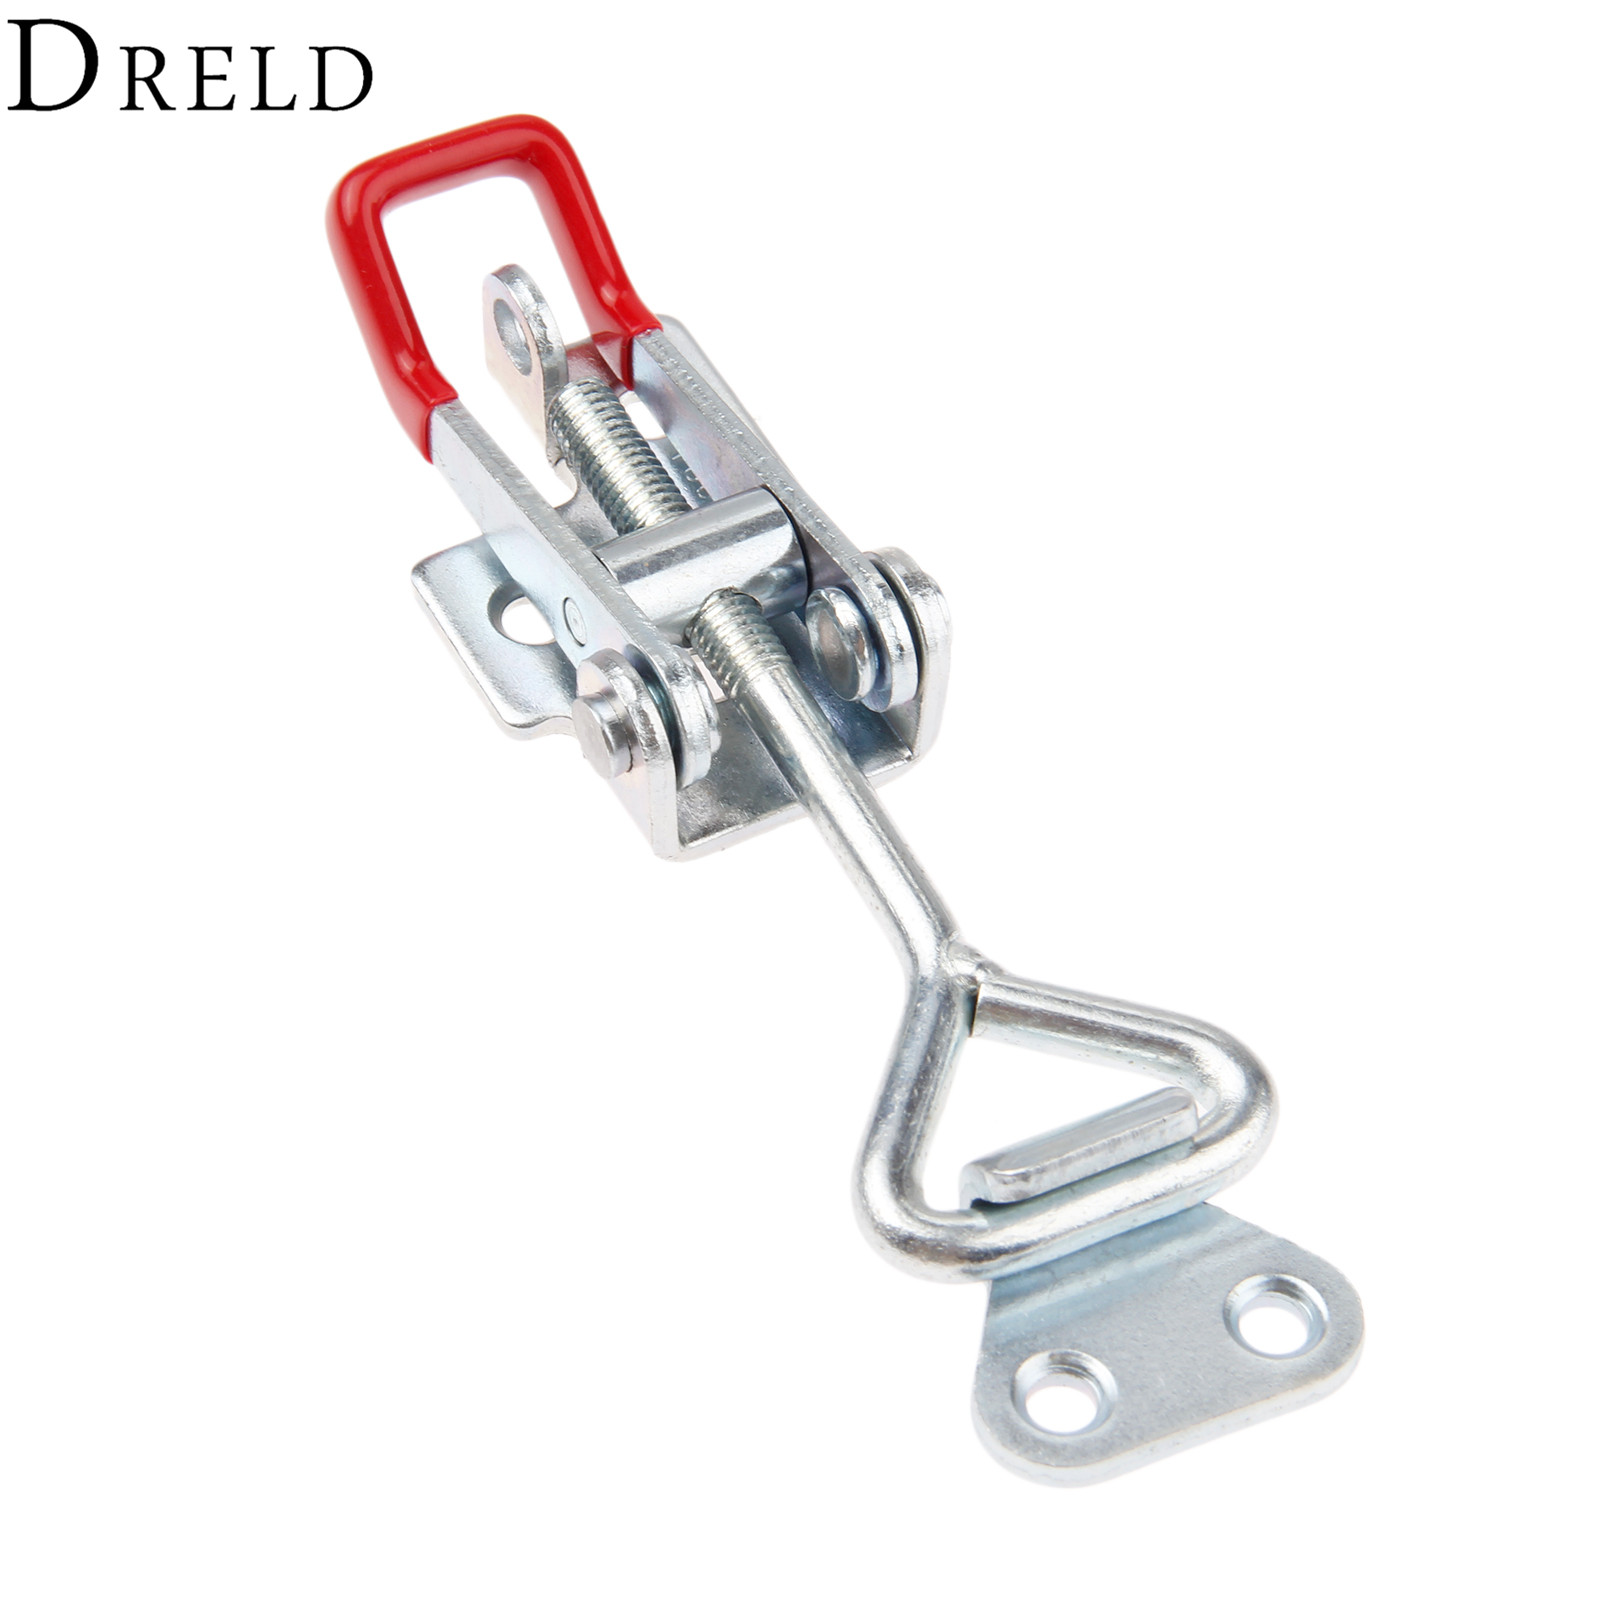 DRELD 1pcs GH-4002 Parighasana Toggle Clamp Clip 200KG/440Lbs Holding Capacity Quick Metal Latch Hand Tool Fixture Clamp gh 12130 227kg capacity hand tool toggle clamp metal flanged base straight handle toggle clamping latch